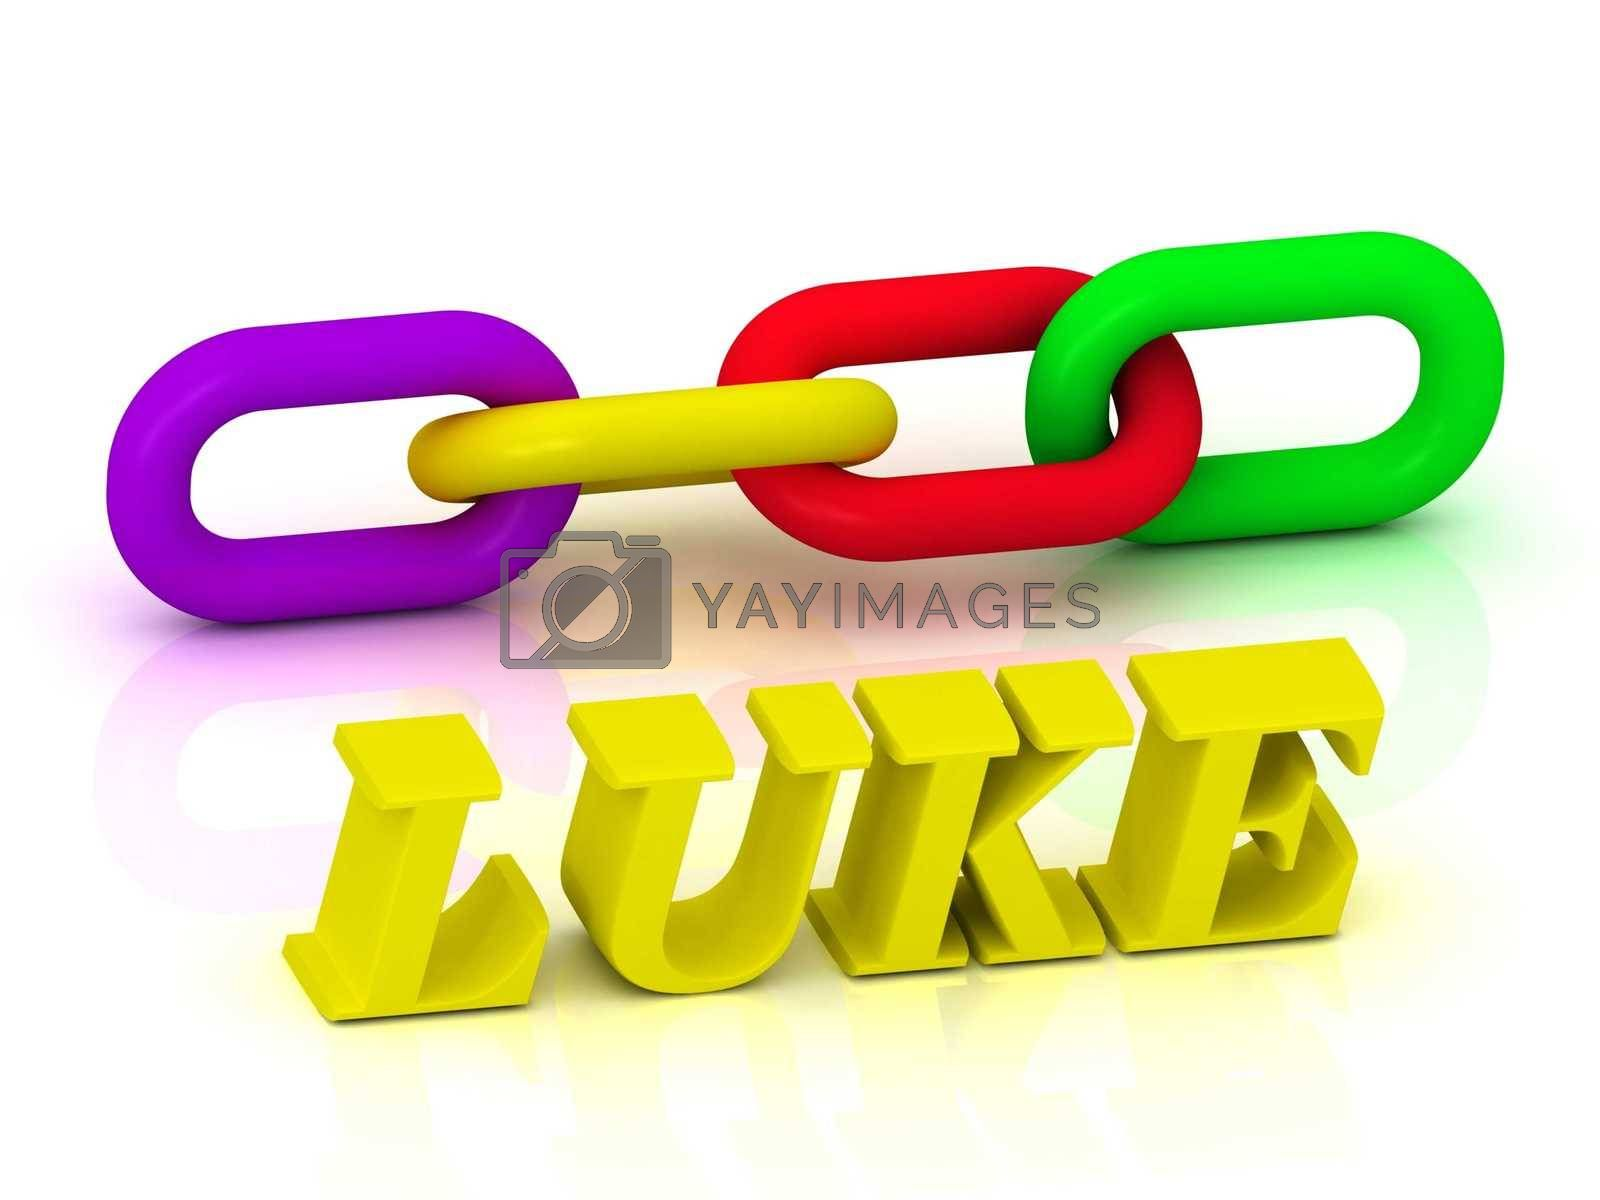 LUKE - Name and Family of bright yellow letters and chain of green, yellow, red section on white background